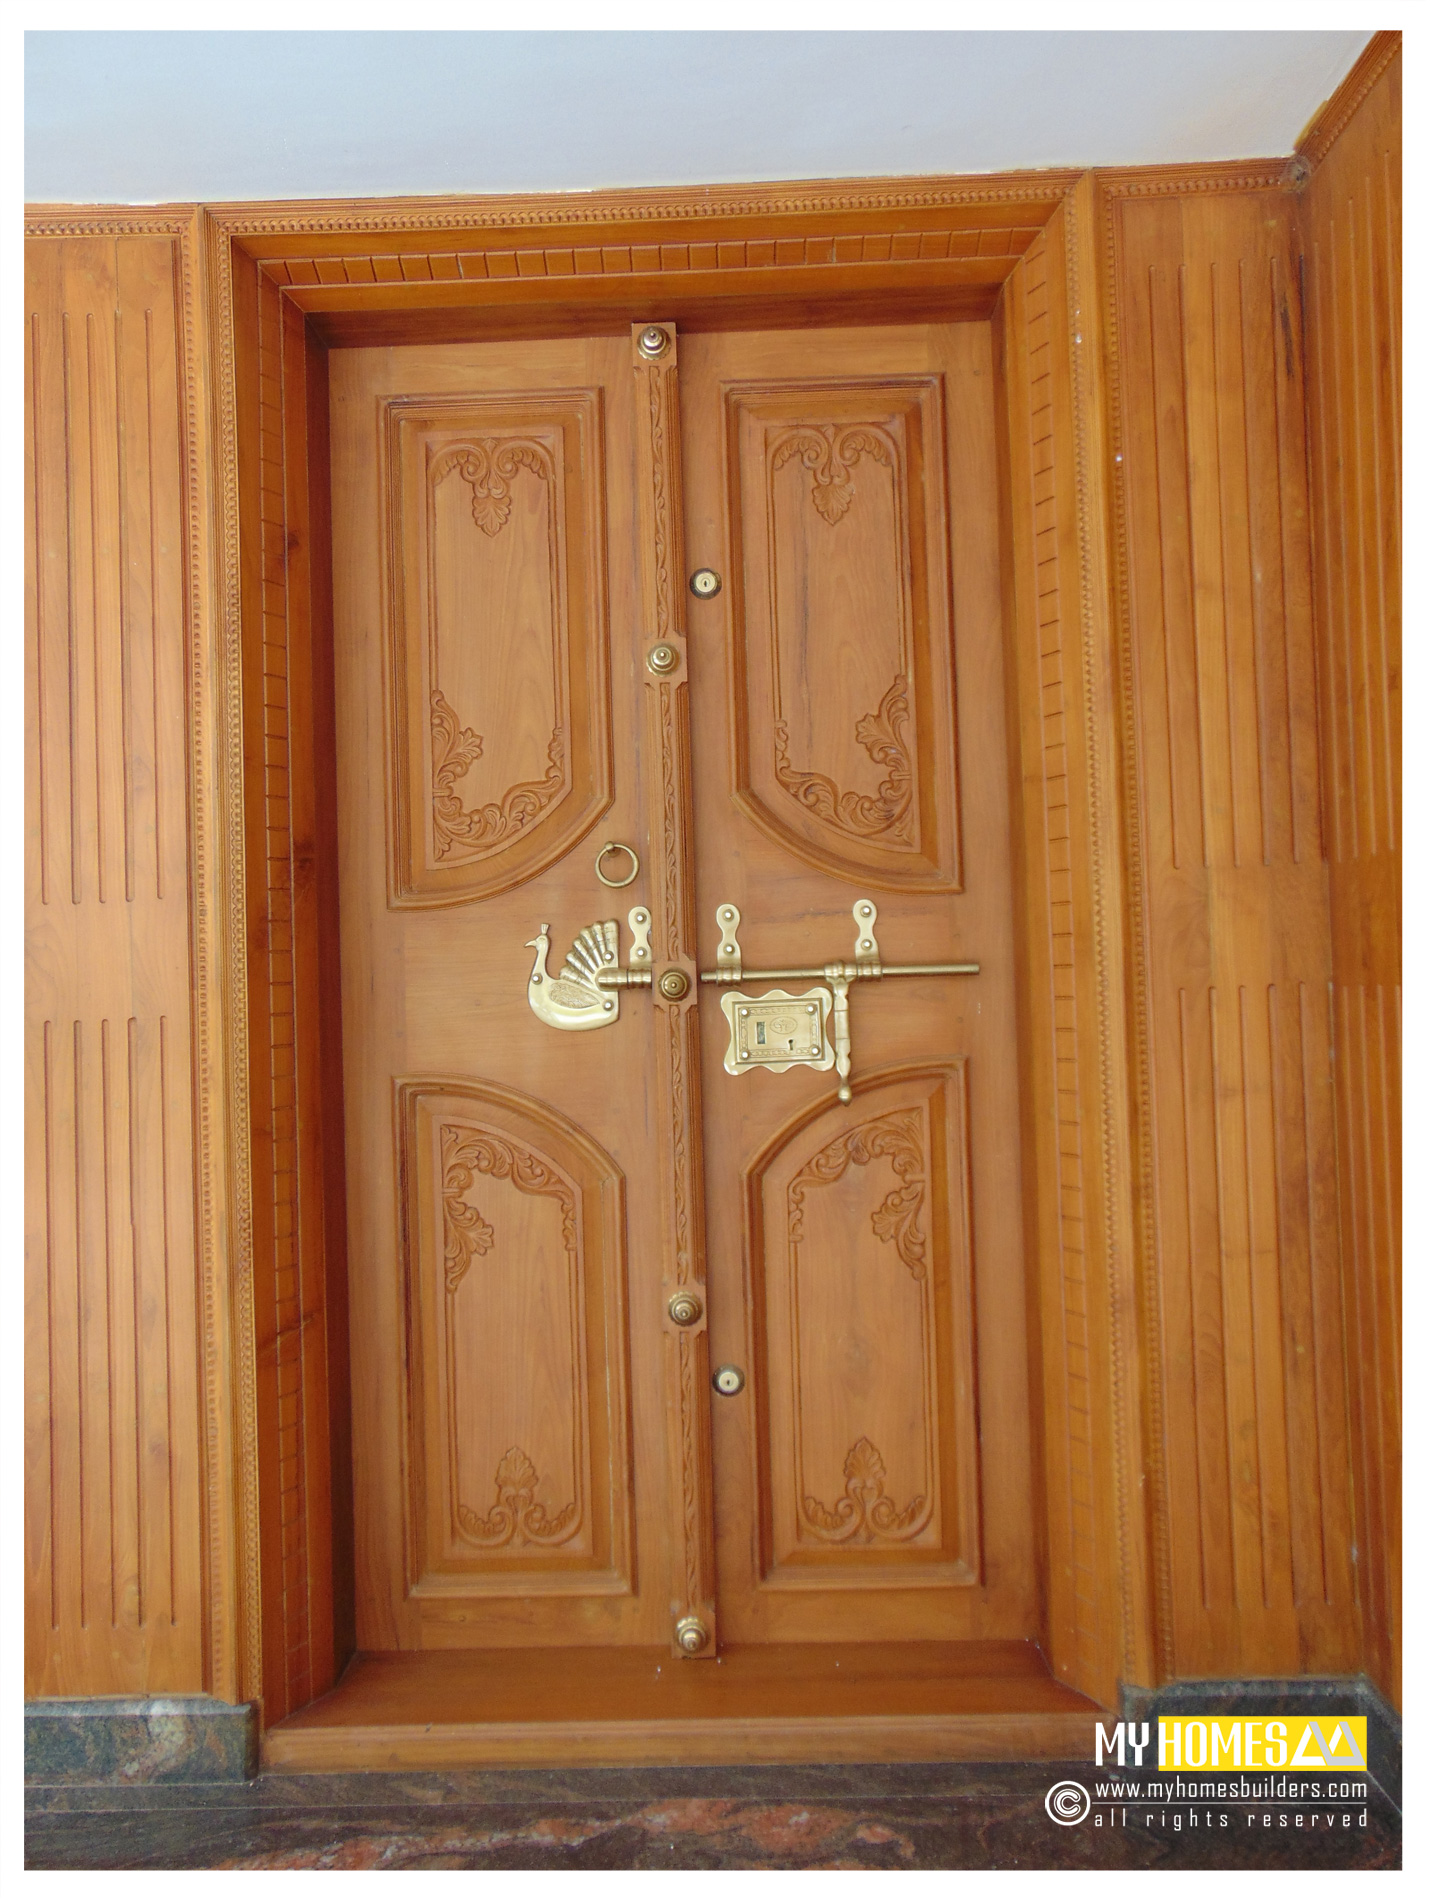 New idea for homes main door designs in kerala india for Main door design